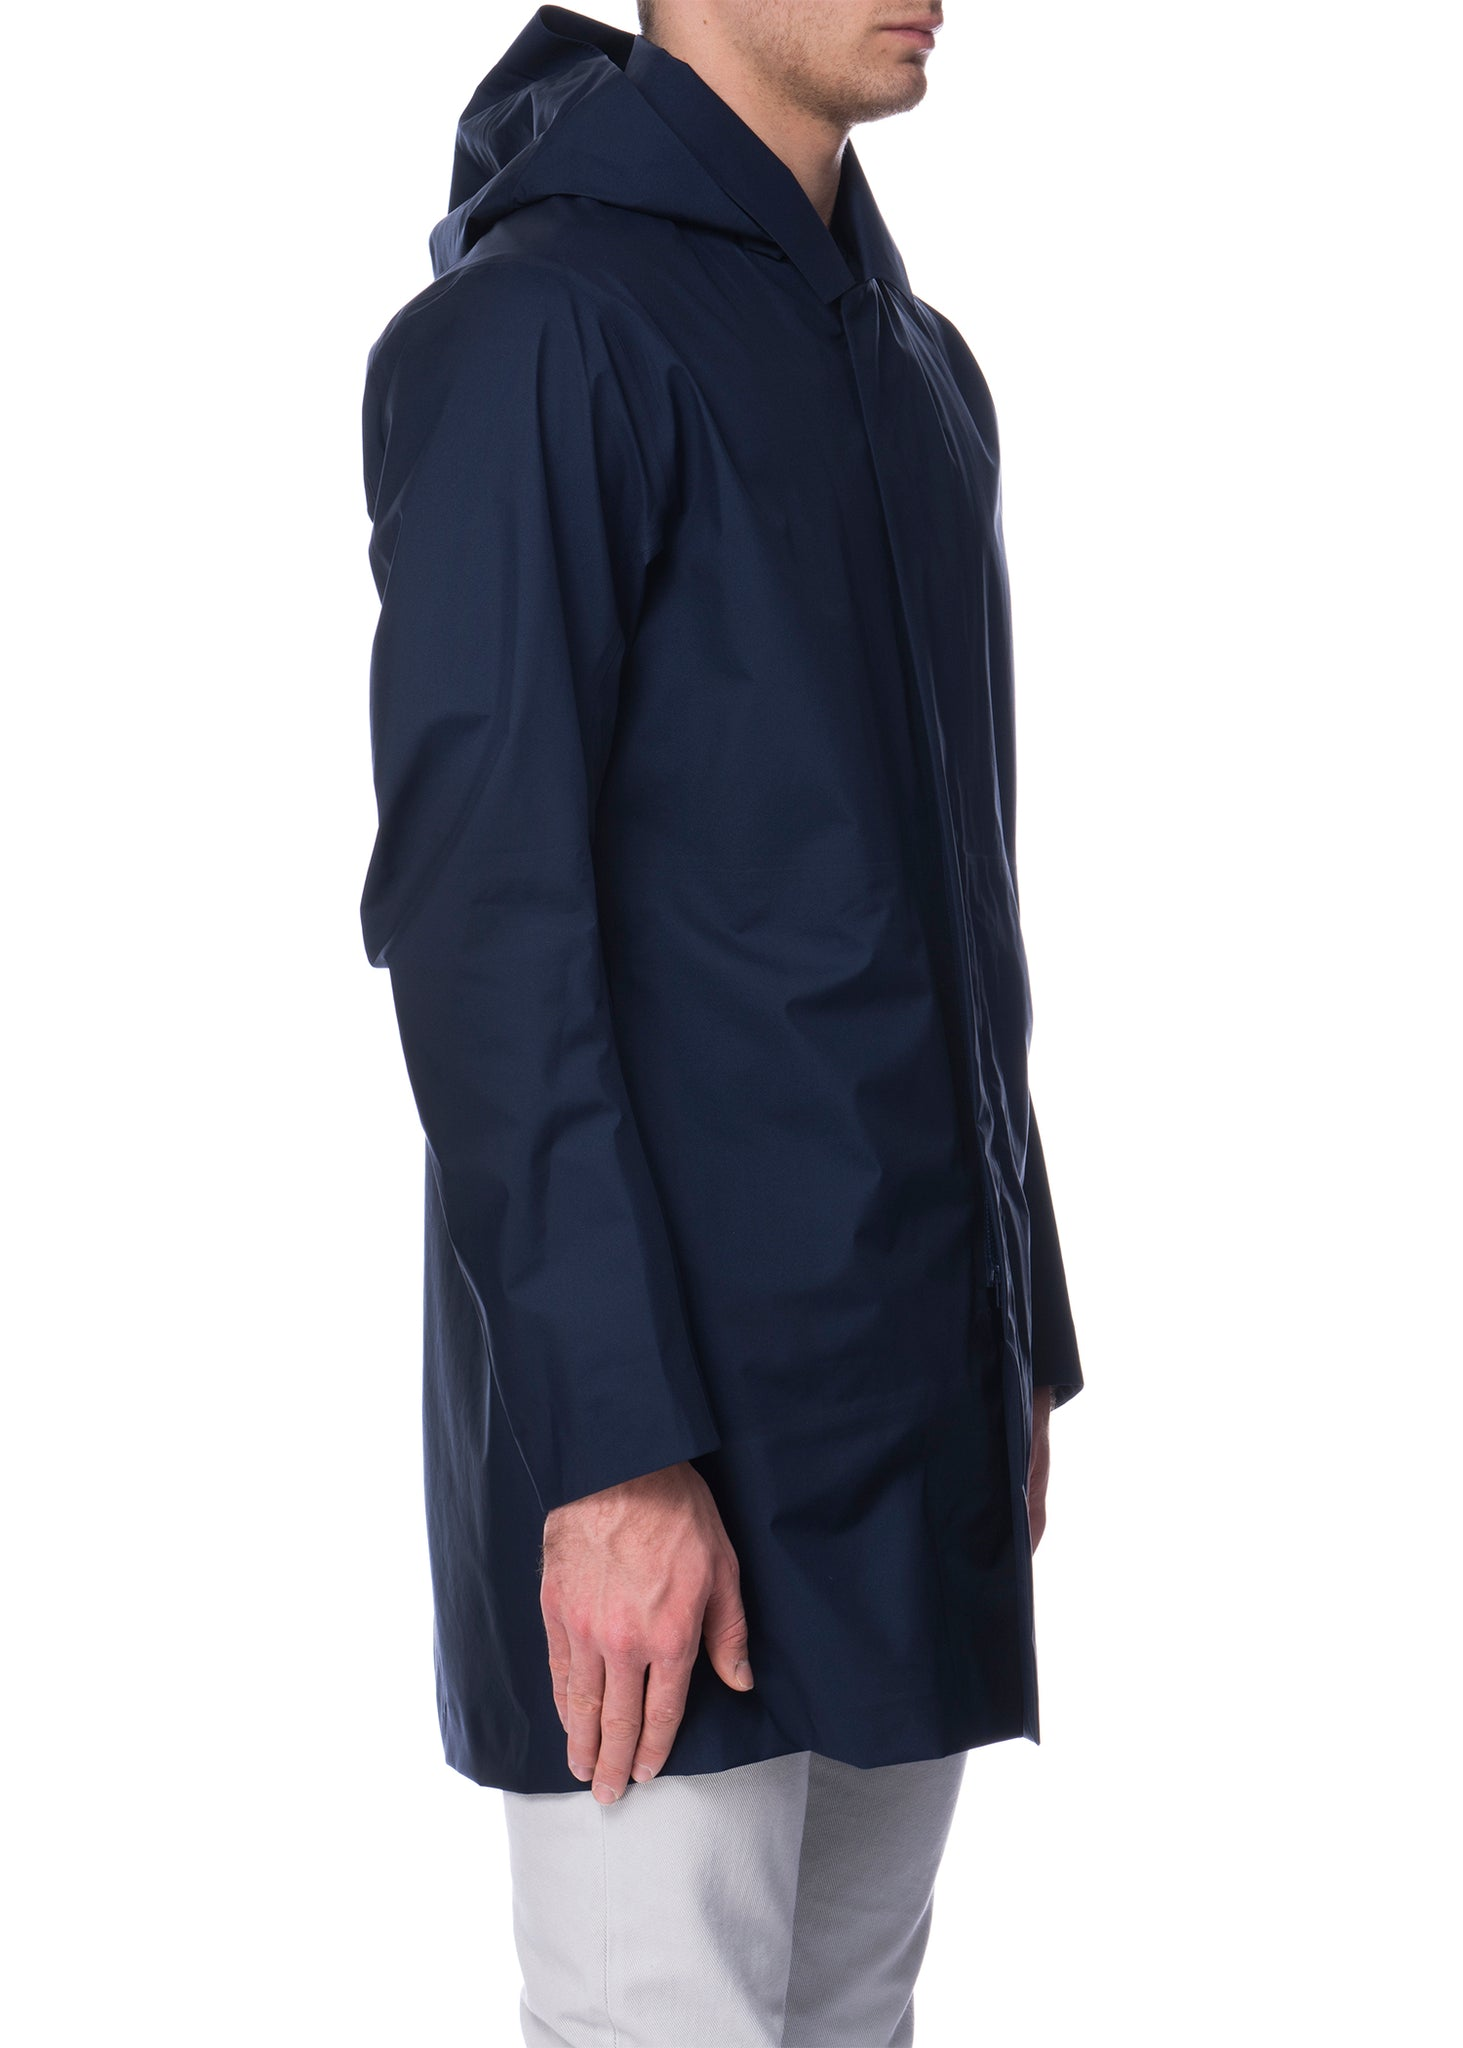 Manteau PARTITION marine|Navy PARTITION coat